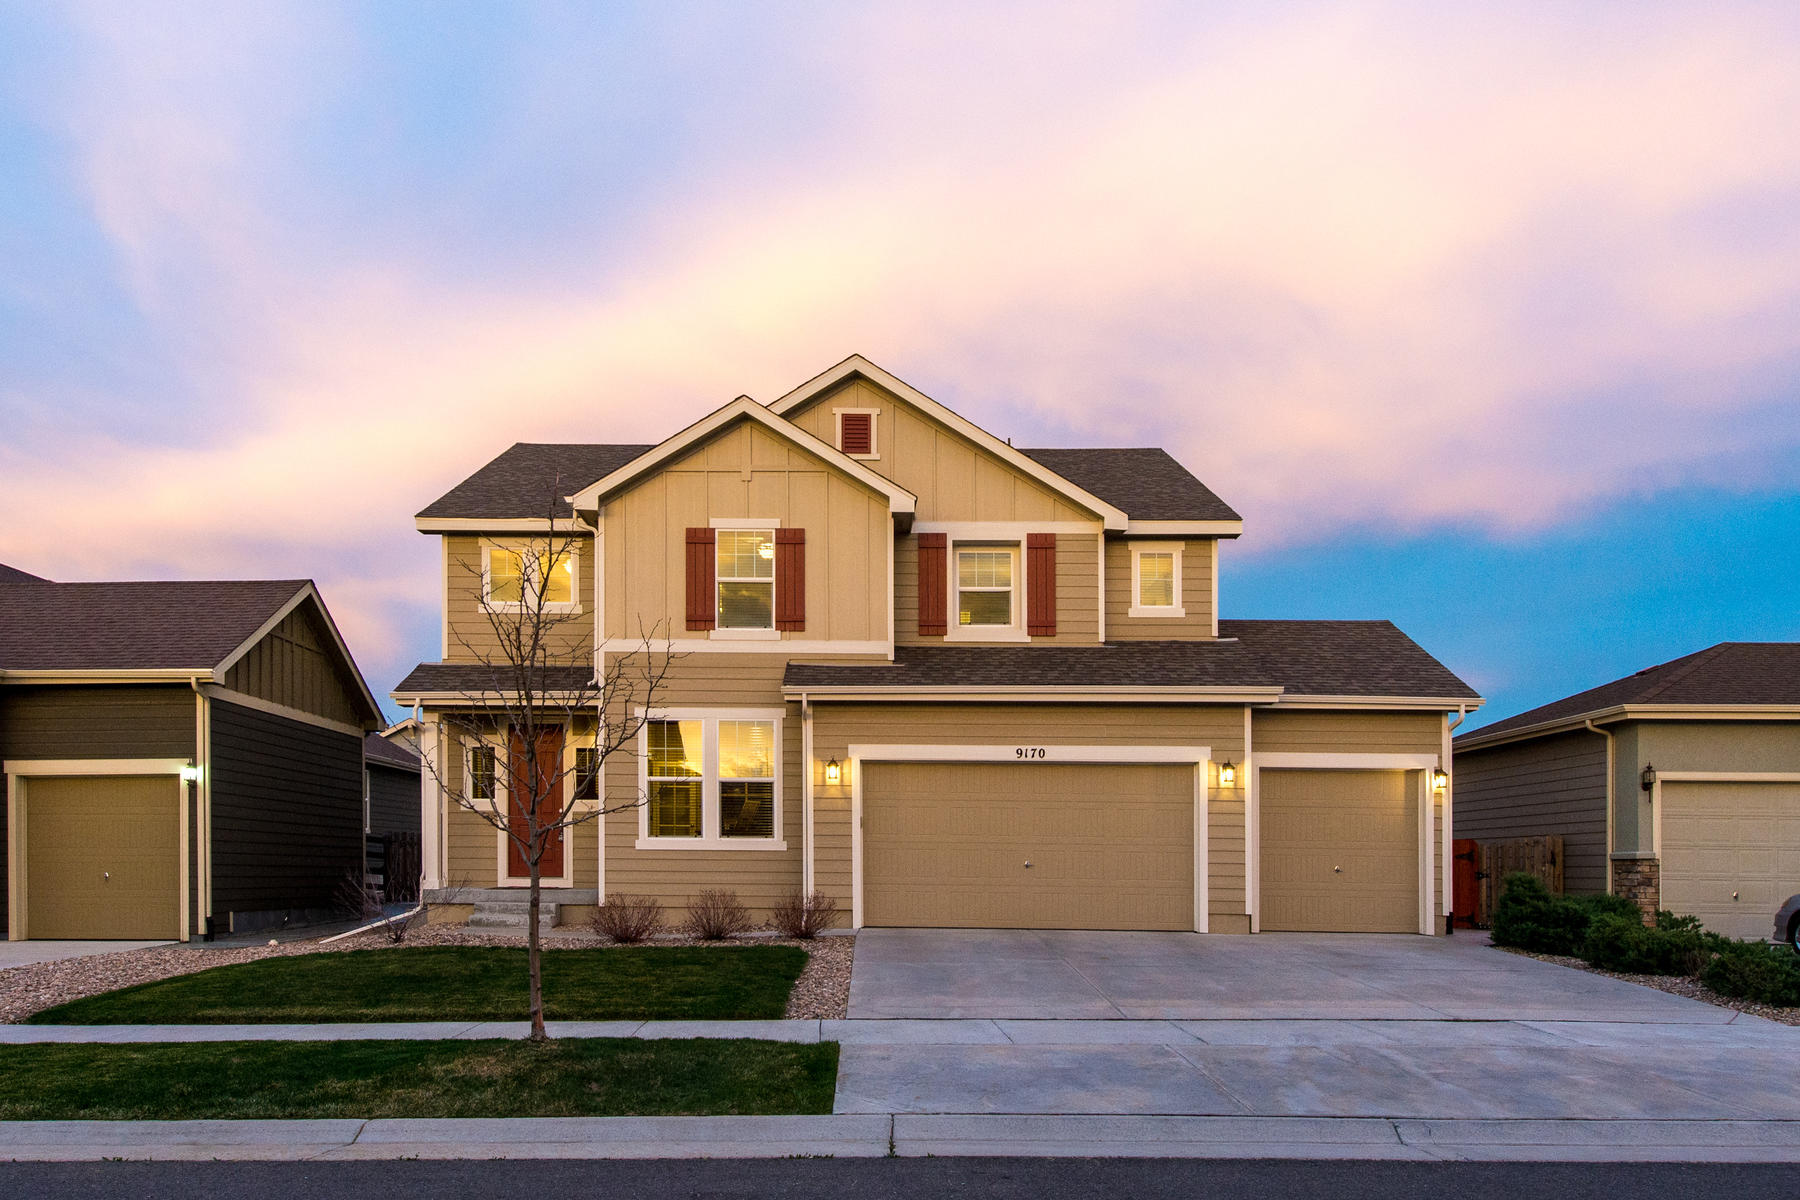 Single Family Home for Active at 9170 Fig Street 9170 Fig Street Arvada, Colorado 80005 United States